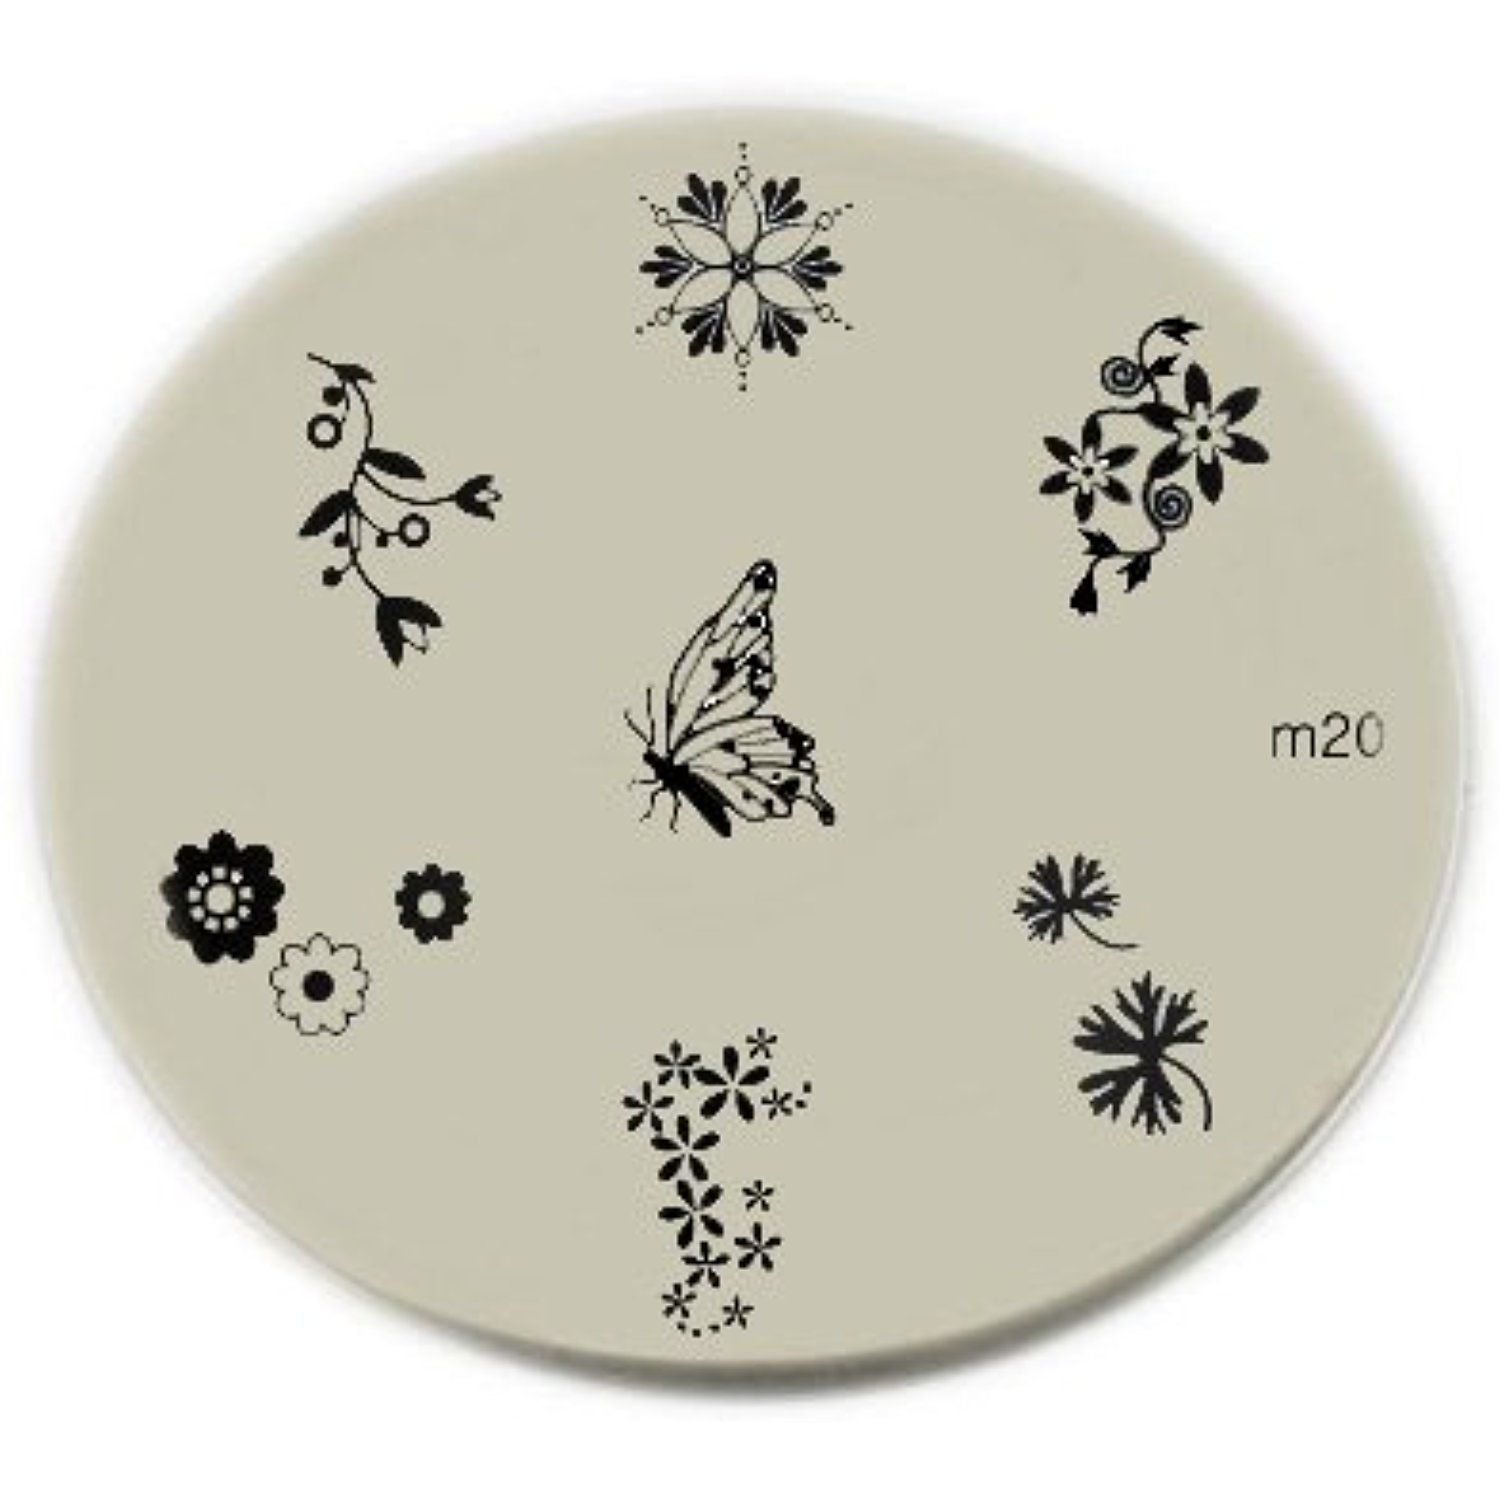 Konad stamping nail art image plate m you can find out more